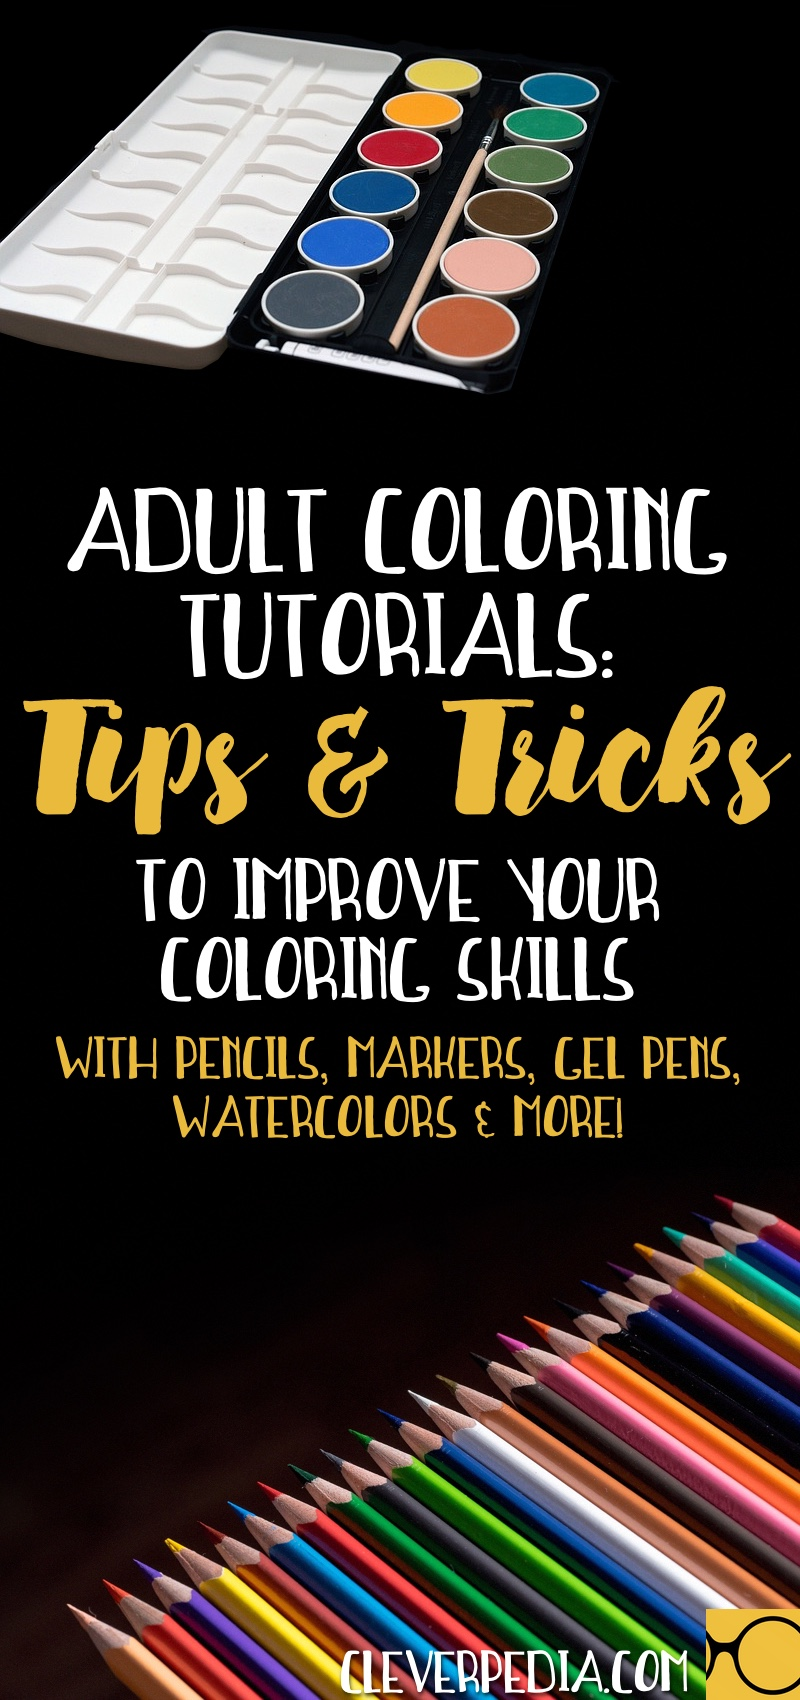 Adult Coloring Tutorials Tips Techniques To Improve Your Skills With Colored Pencils